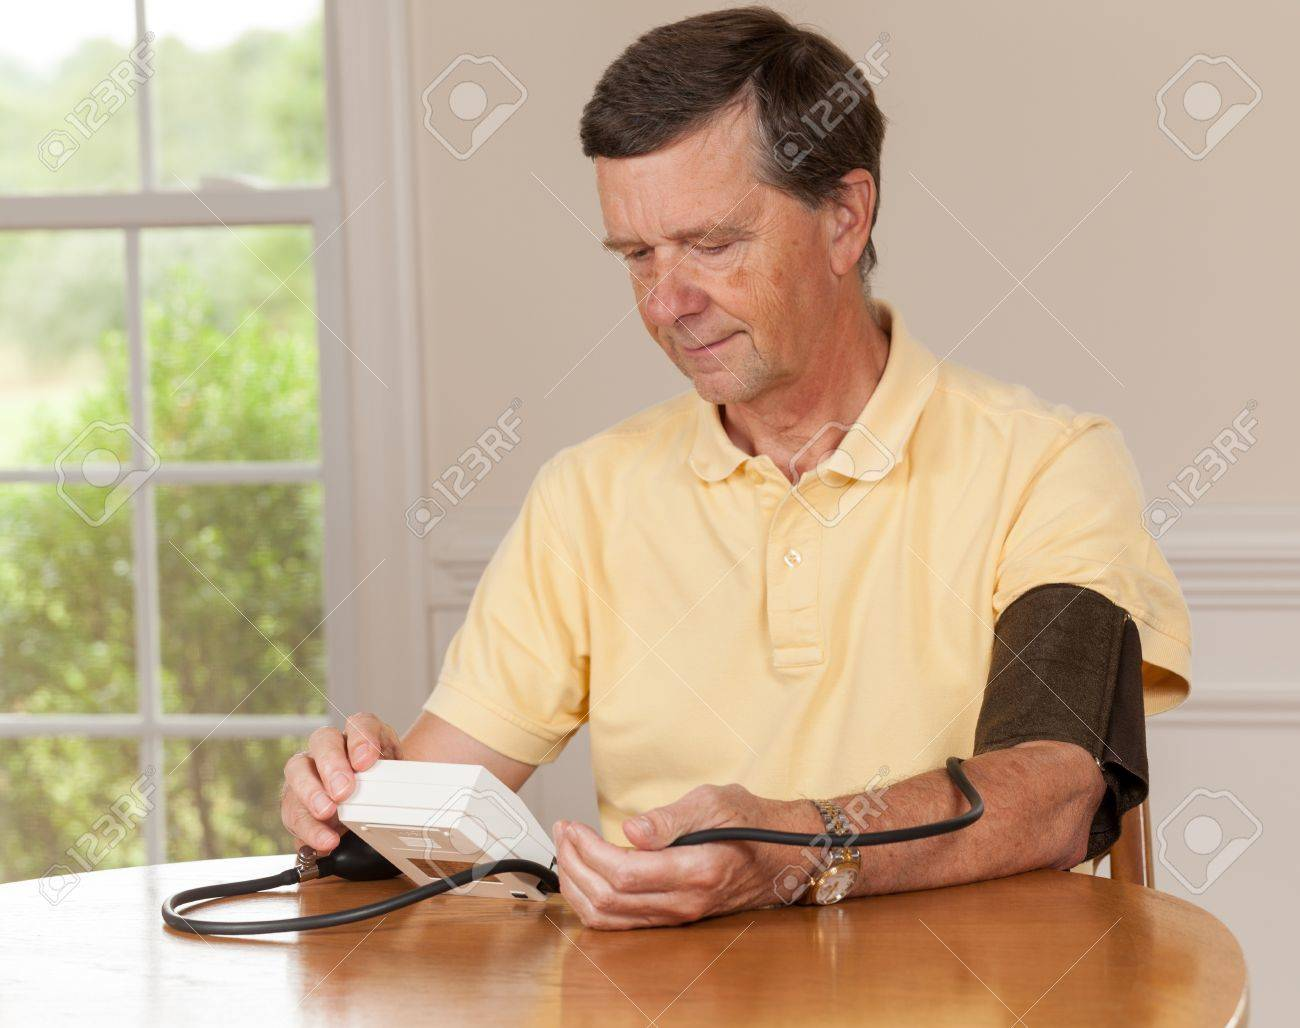 Senior caucasian retired male taking blood pressure at home Stock Photo - 14443215